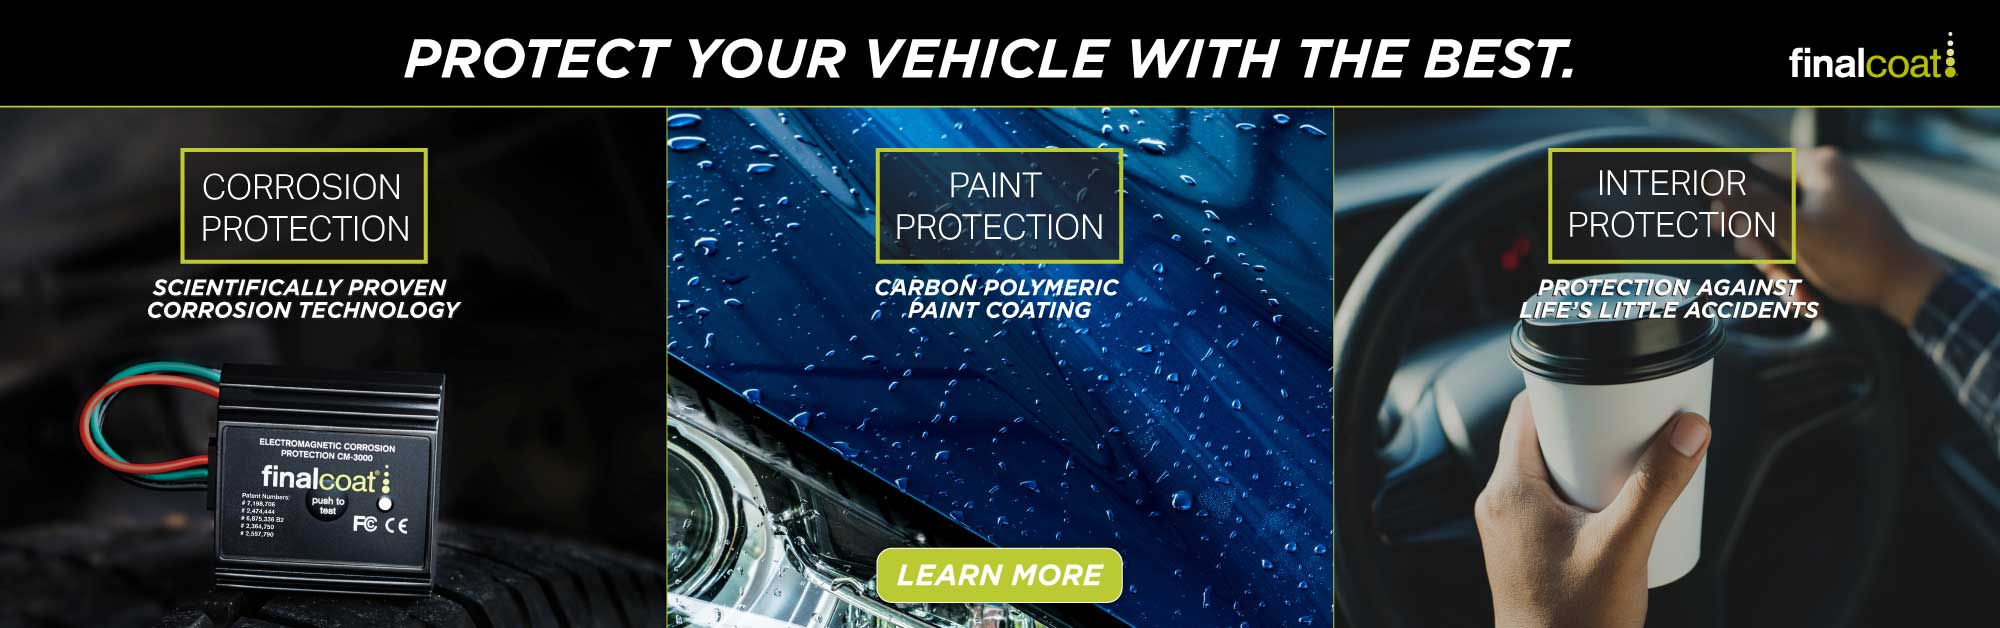 Protect Your Vehicle With The Best Final Coat at Dalt's Honda Orillia